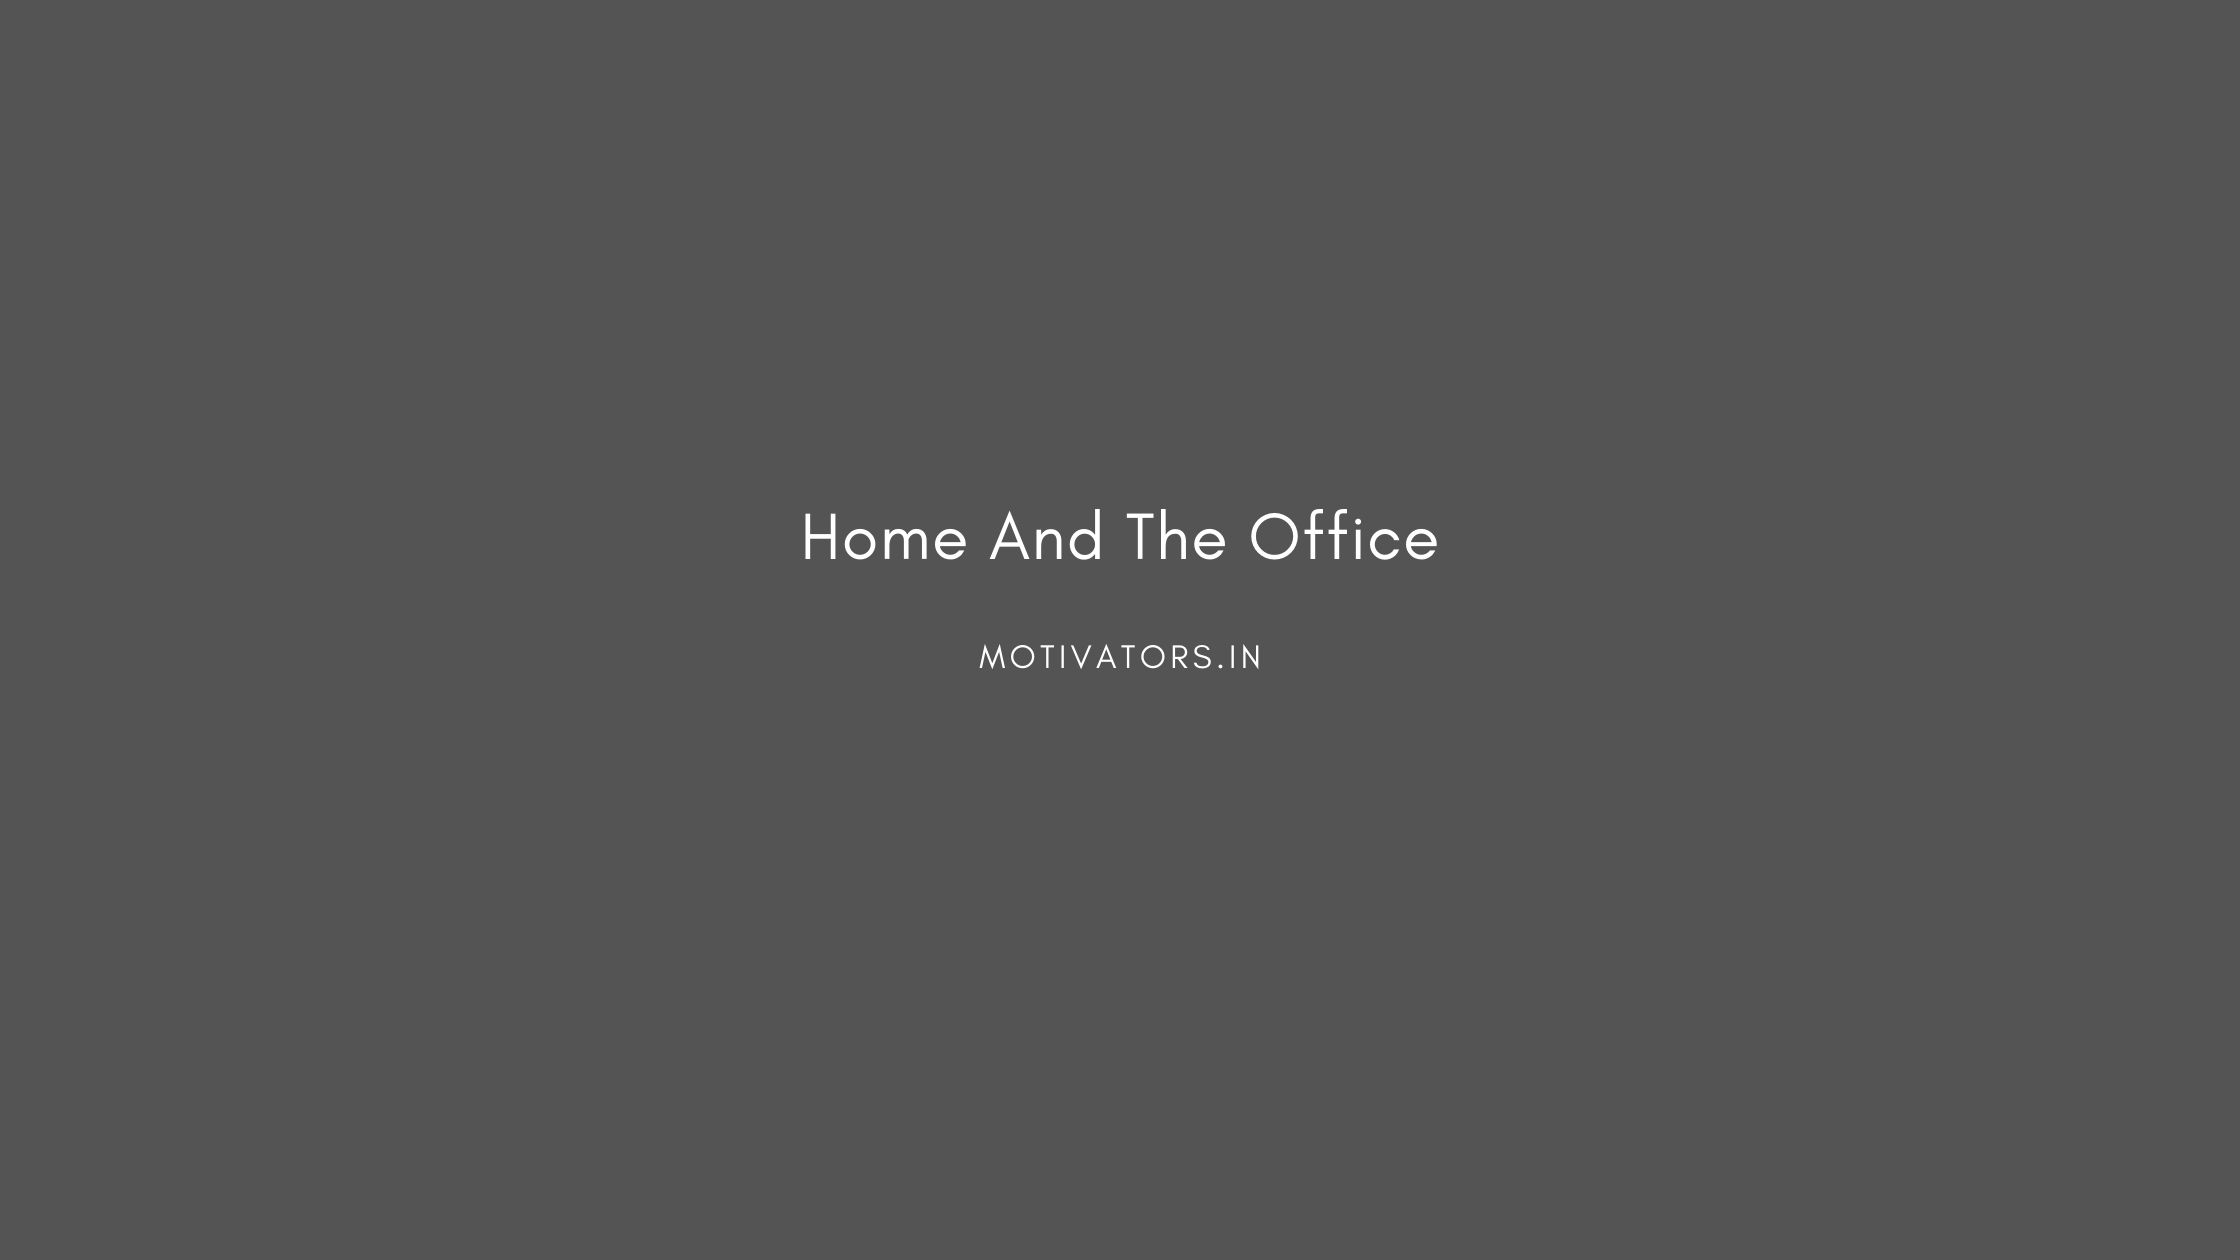 Home And The Office